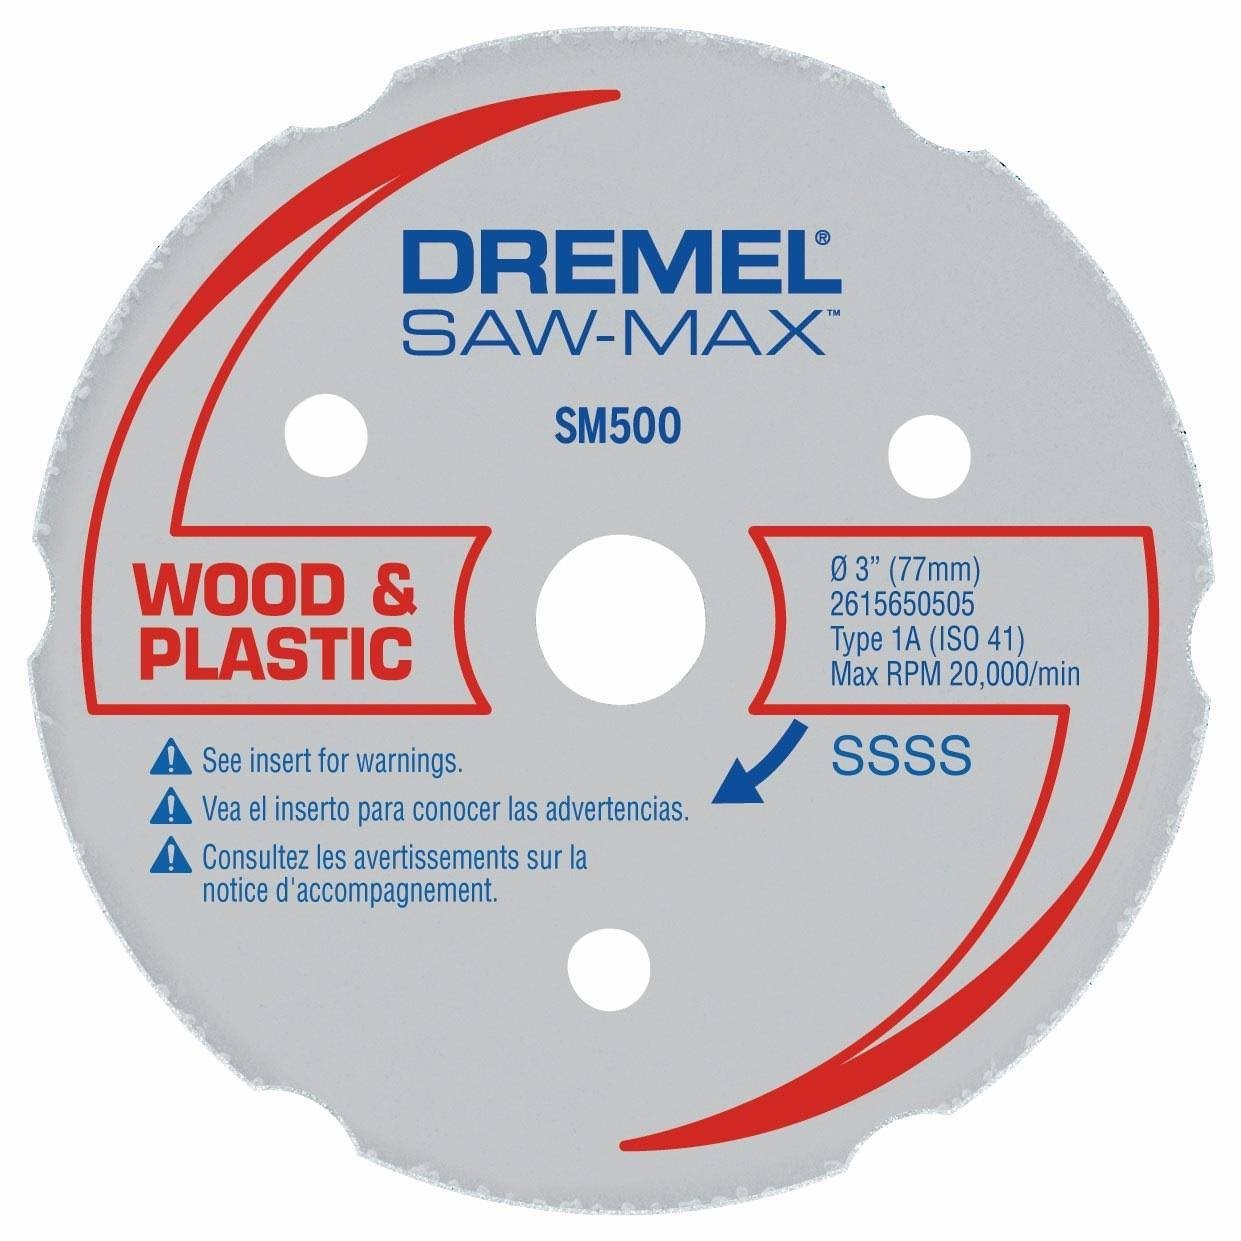 Dremel - 3 In. Saw-Max Wood & Plastic Carbide Wheel